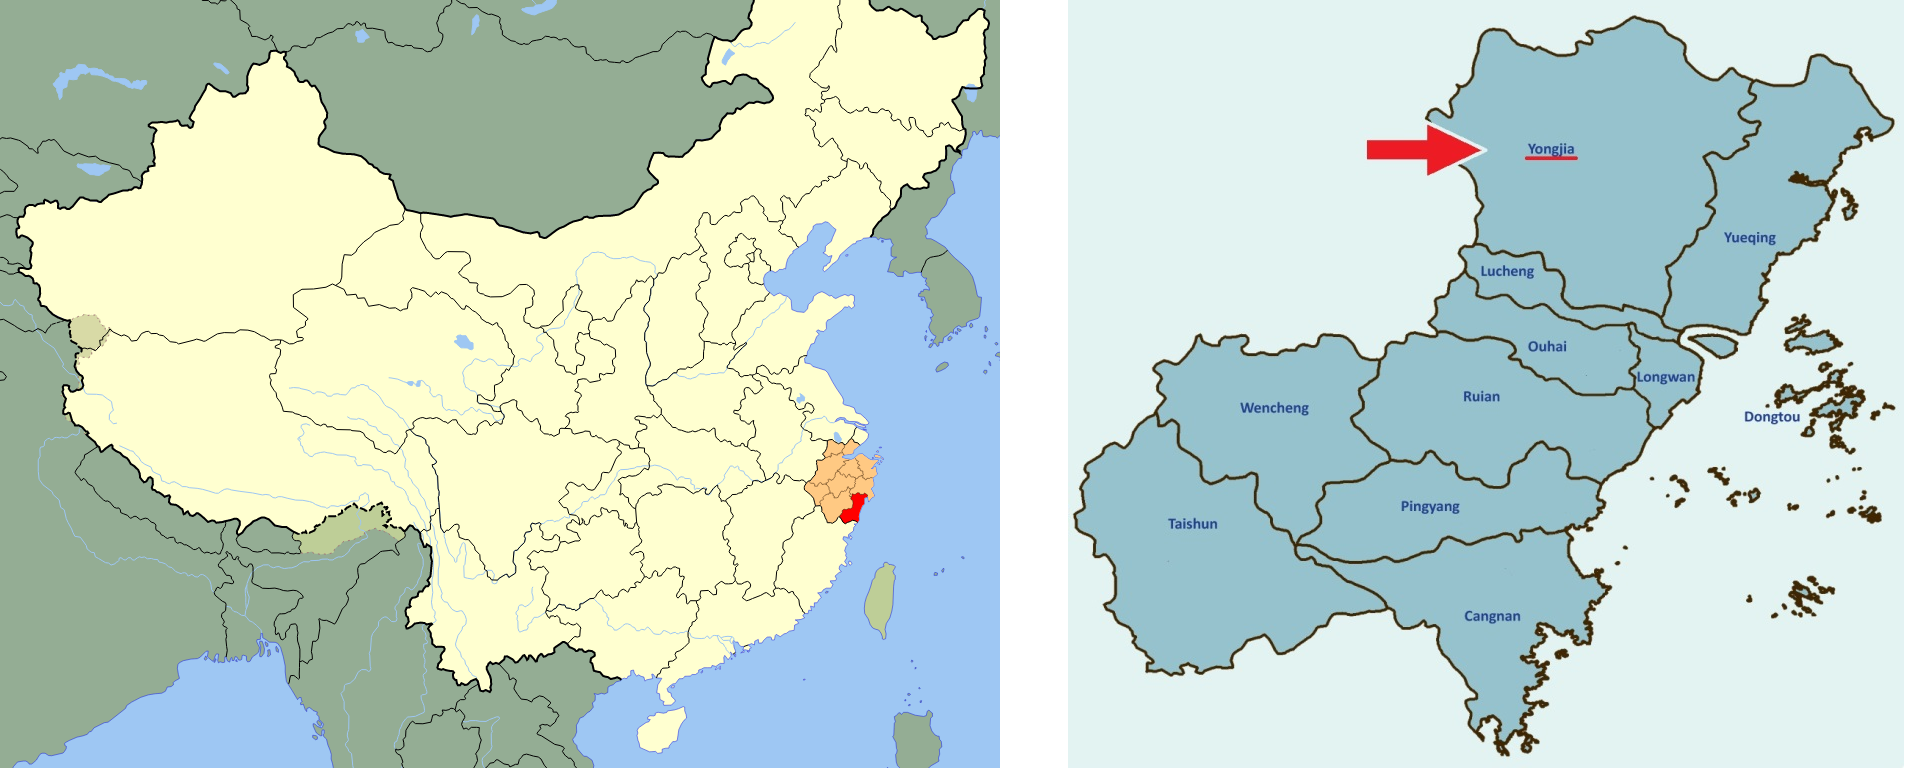 Left: Whenzhou City in the Zhejiang Province. Right: Yongjia county in Wenzhou city.